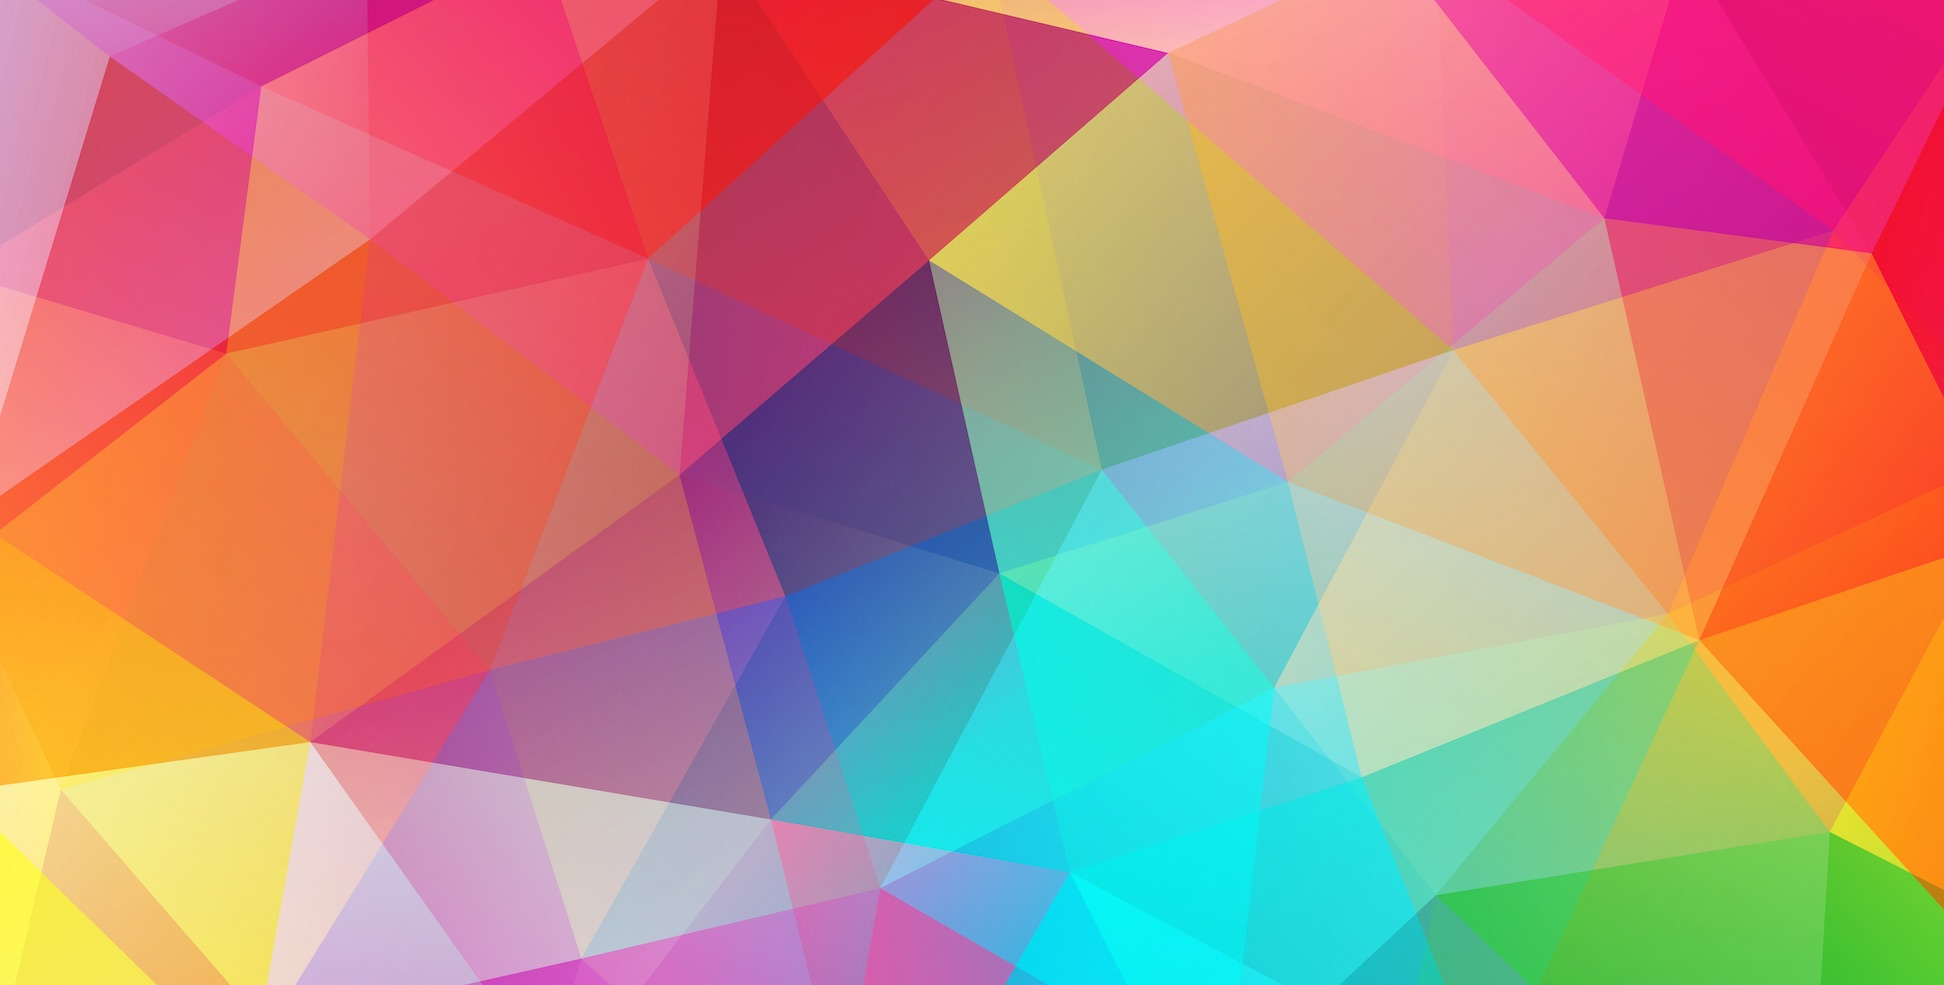 Game color theory - Web Design Color Theory How To Create The Right Emotions With Color In Web Design